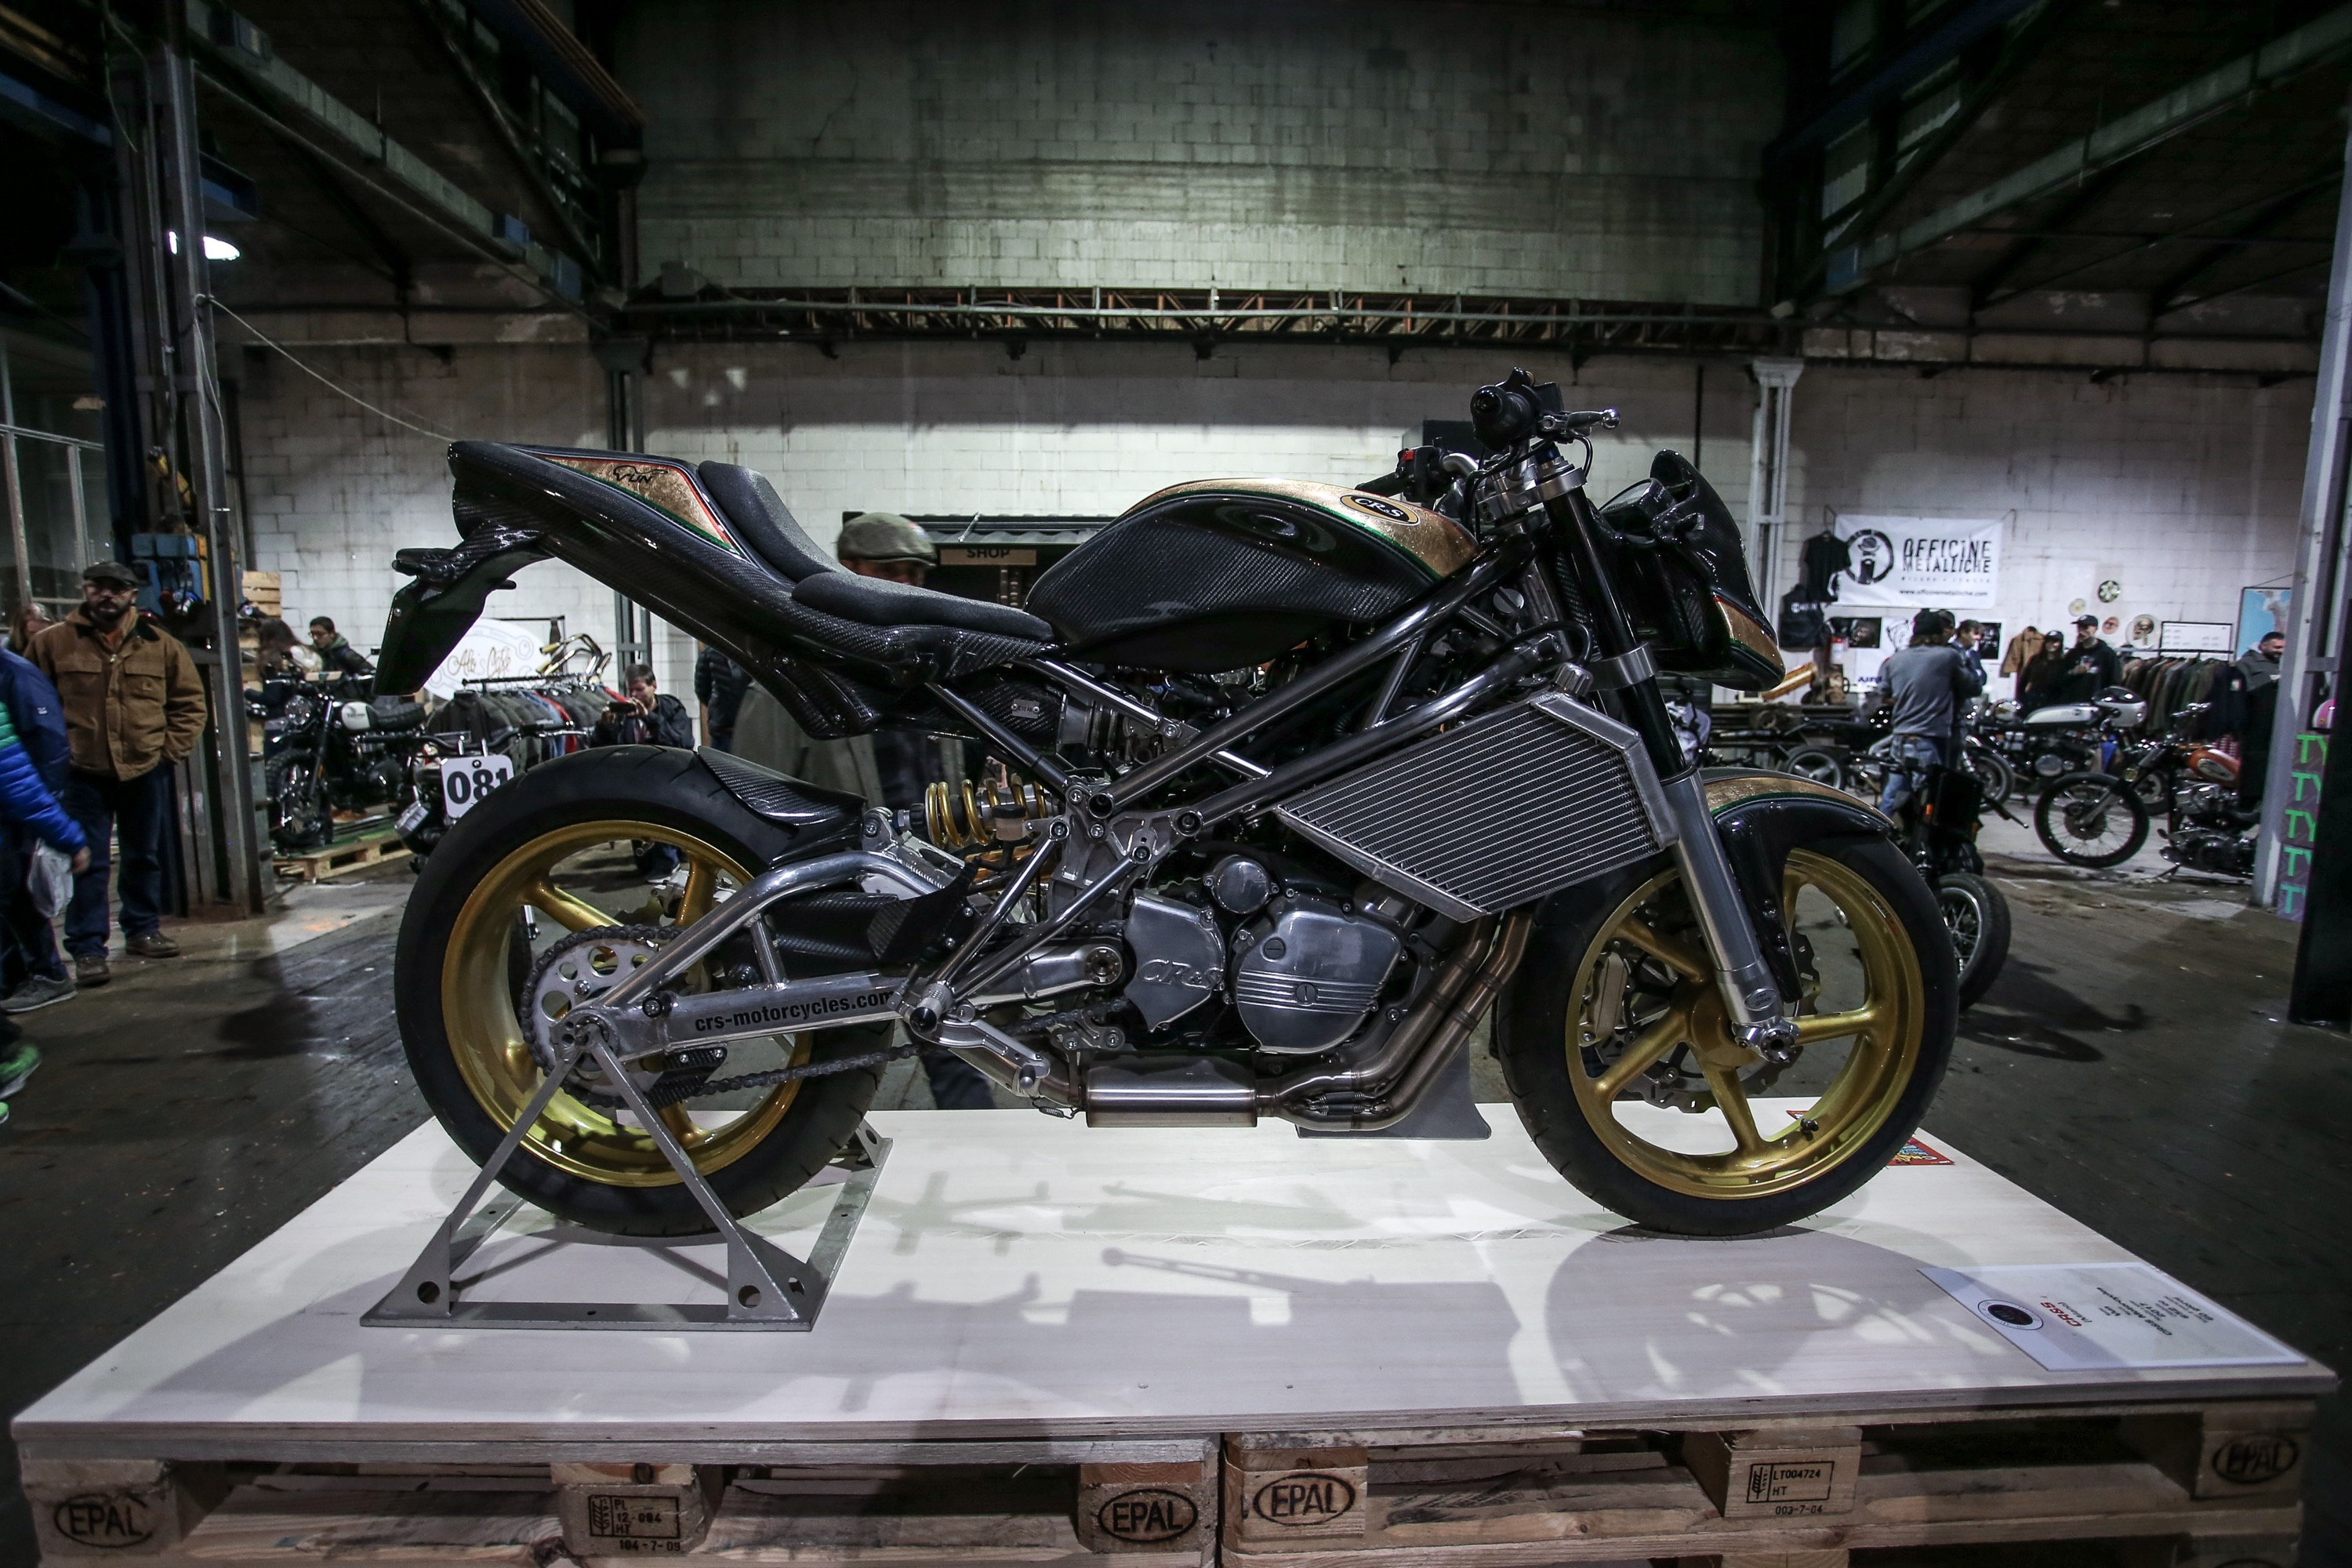 East EICMA Motorcycle ducati